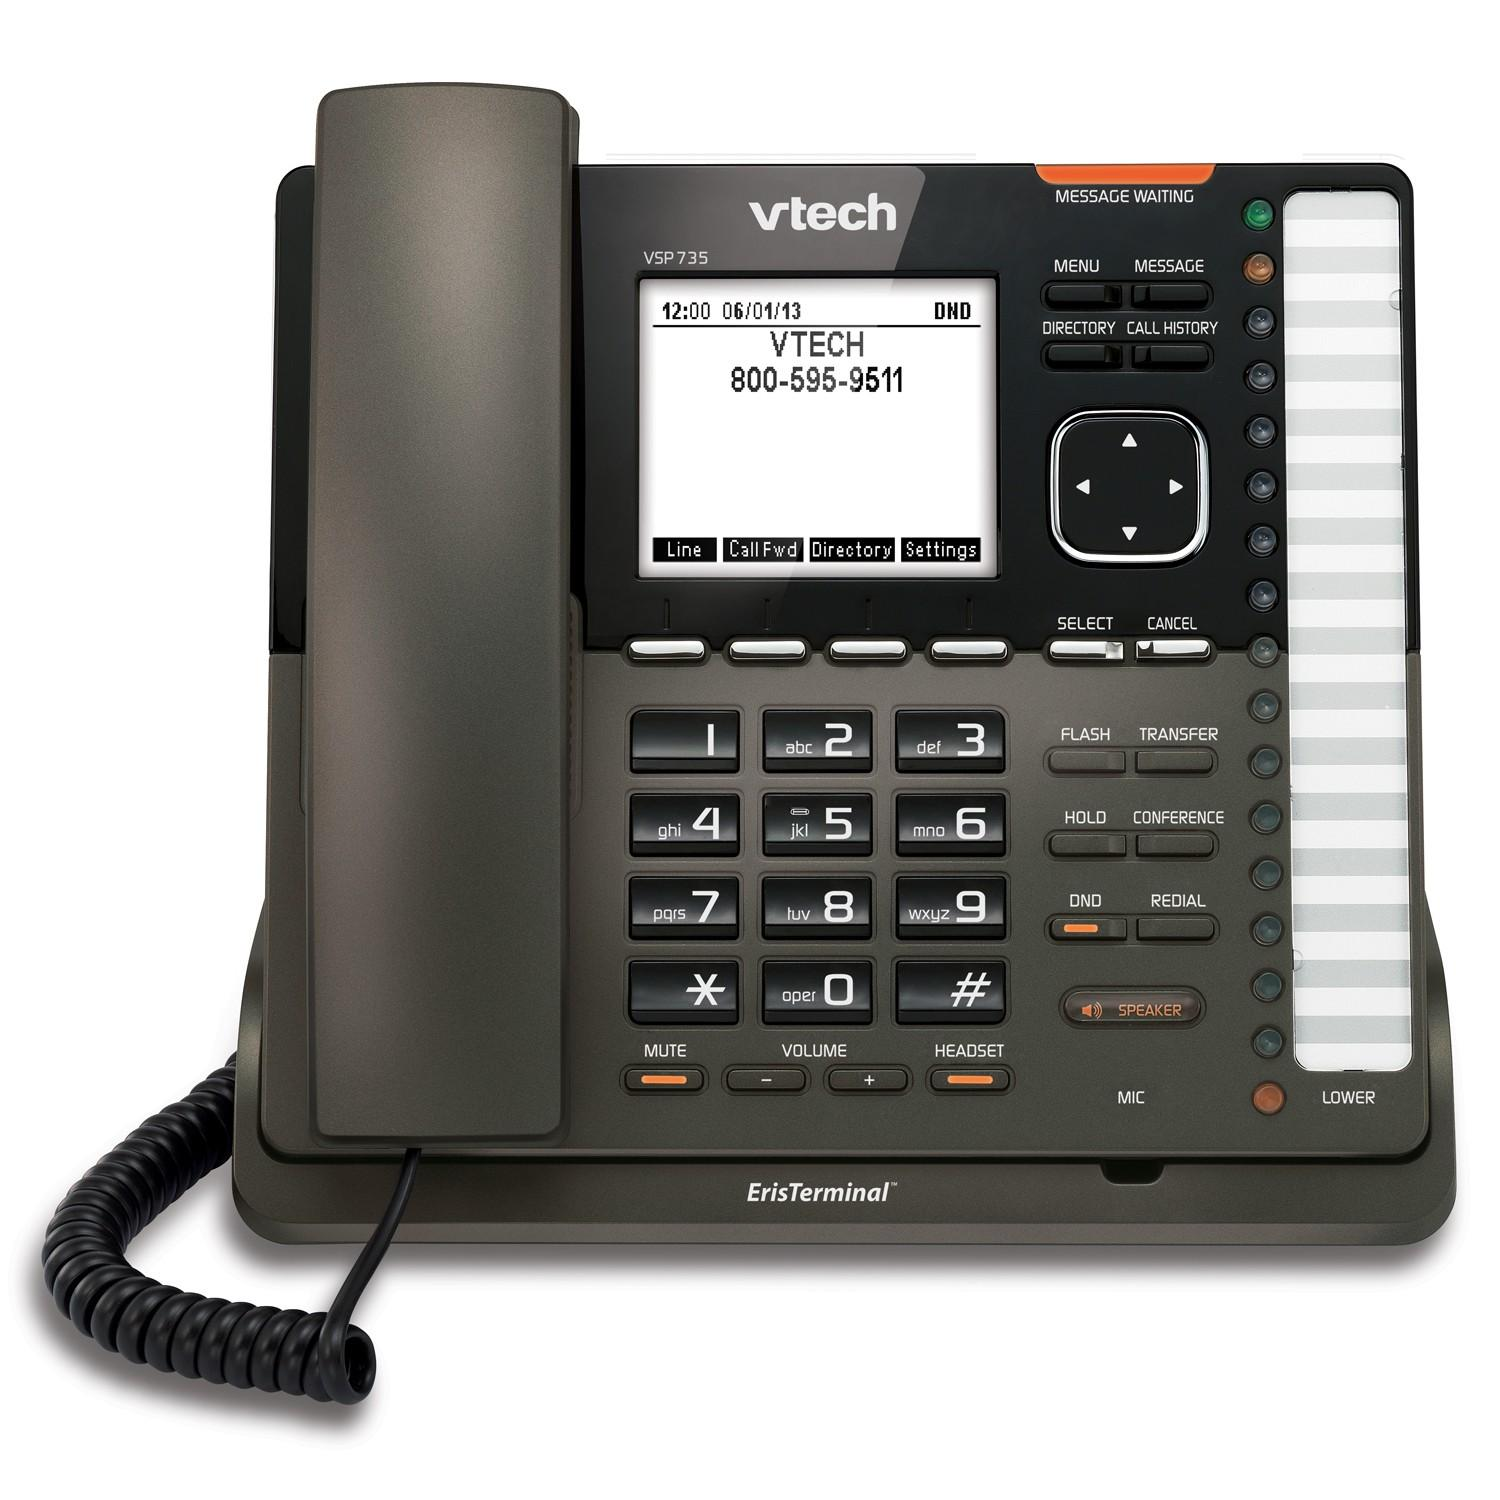 The VTech VSP735 Retail Store Phone